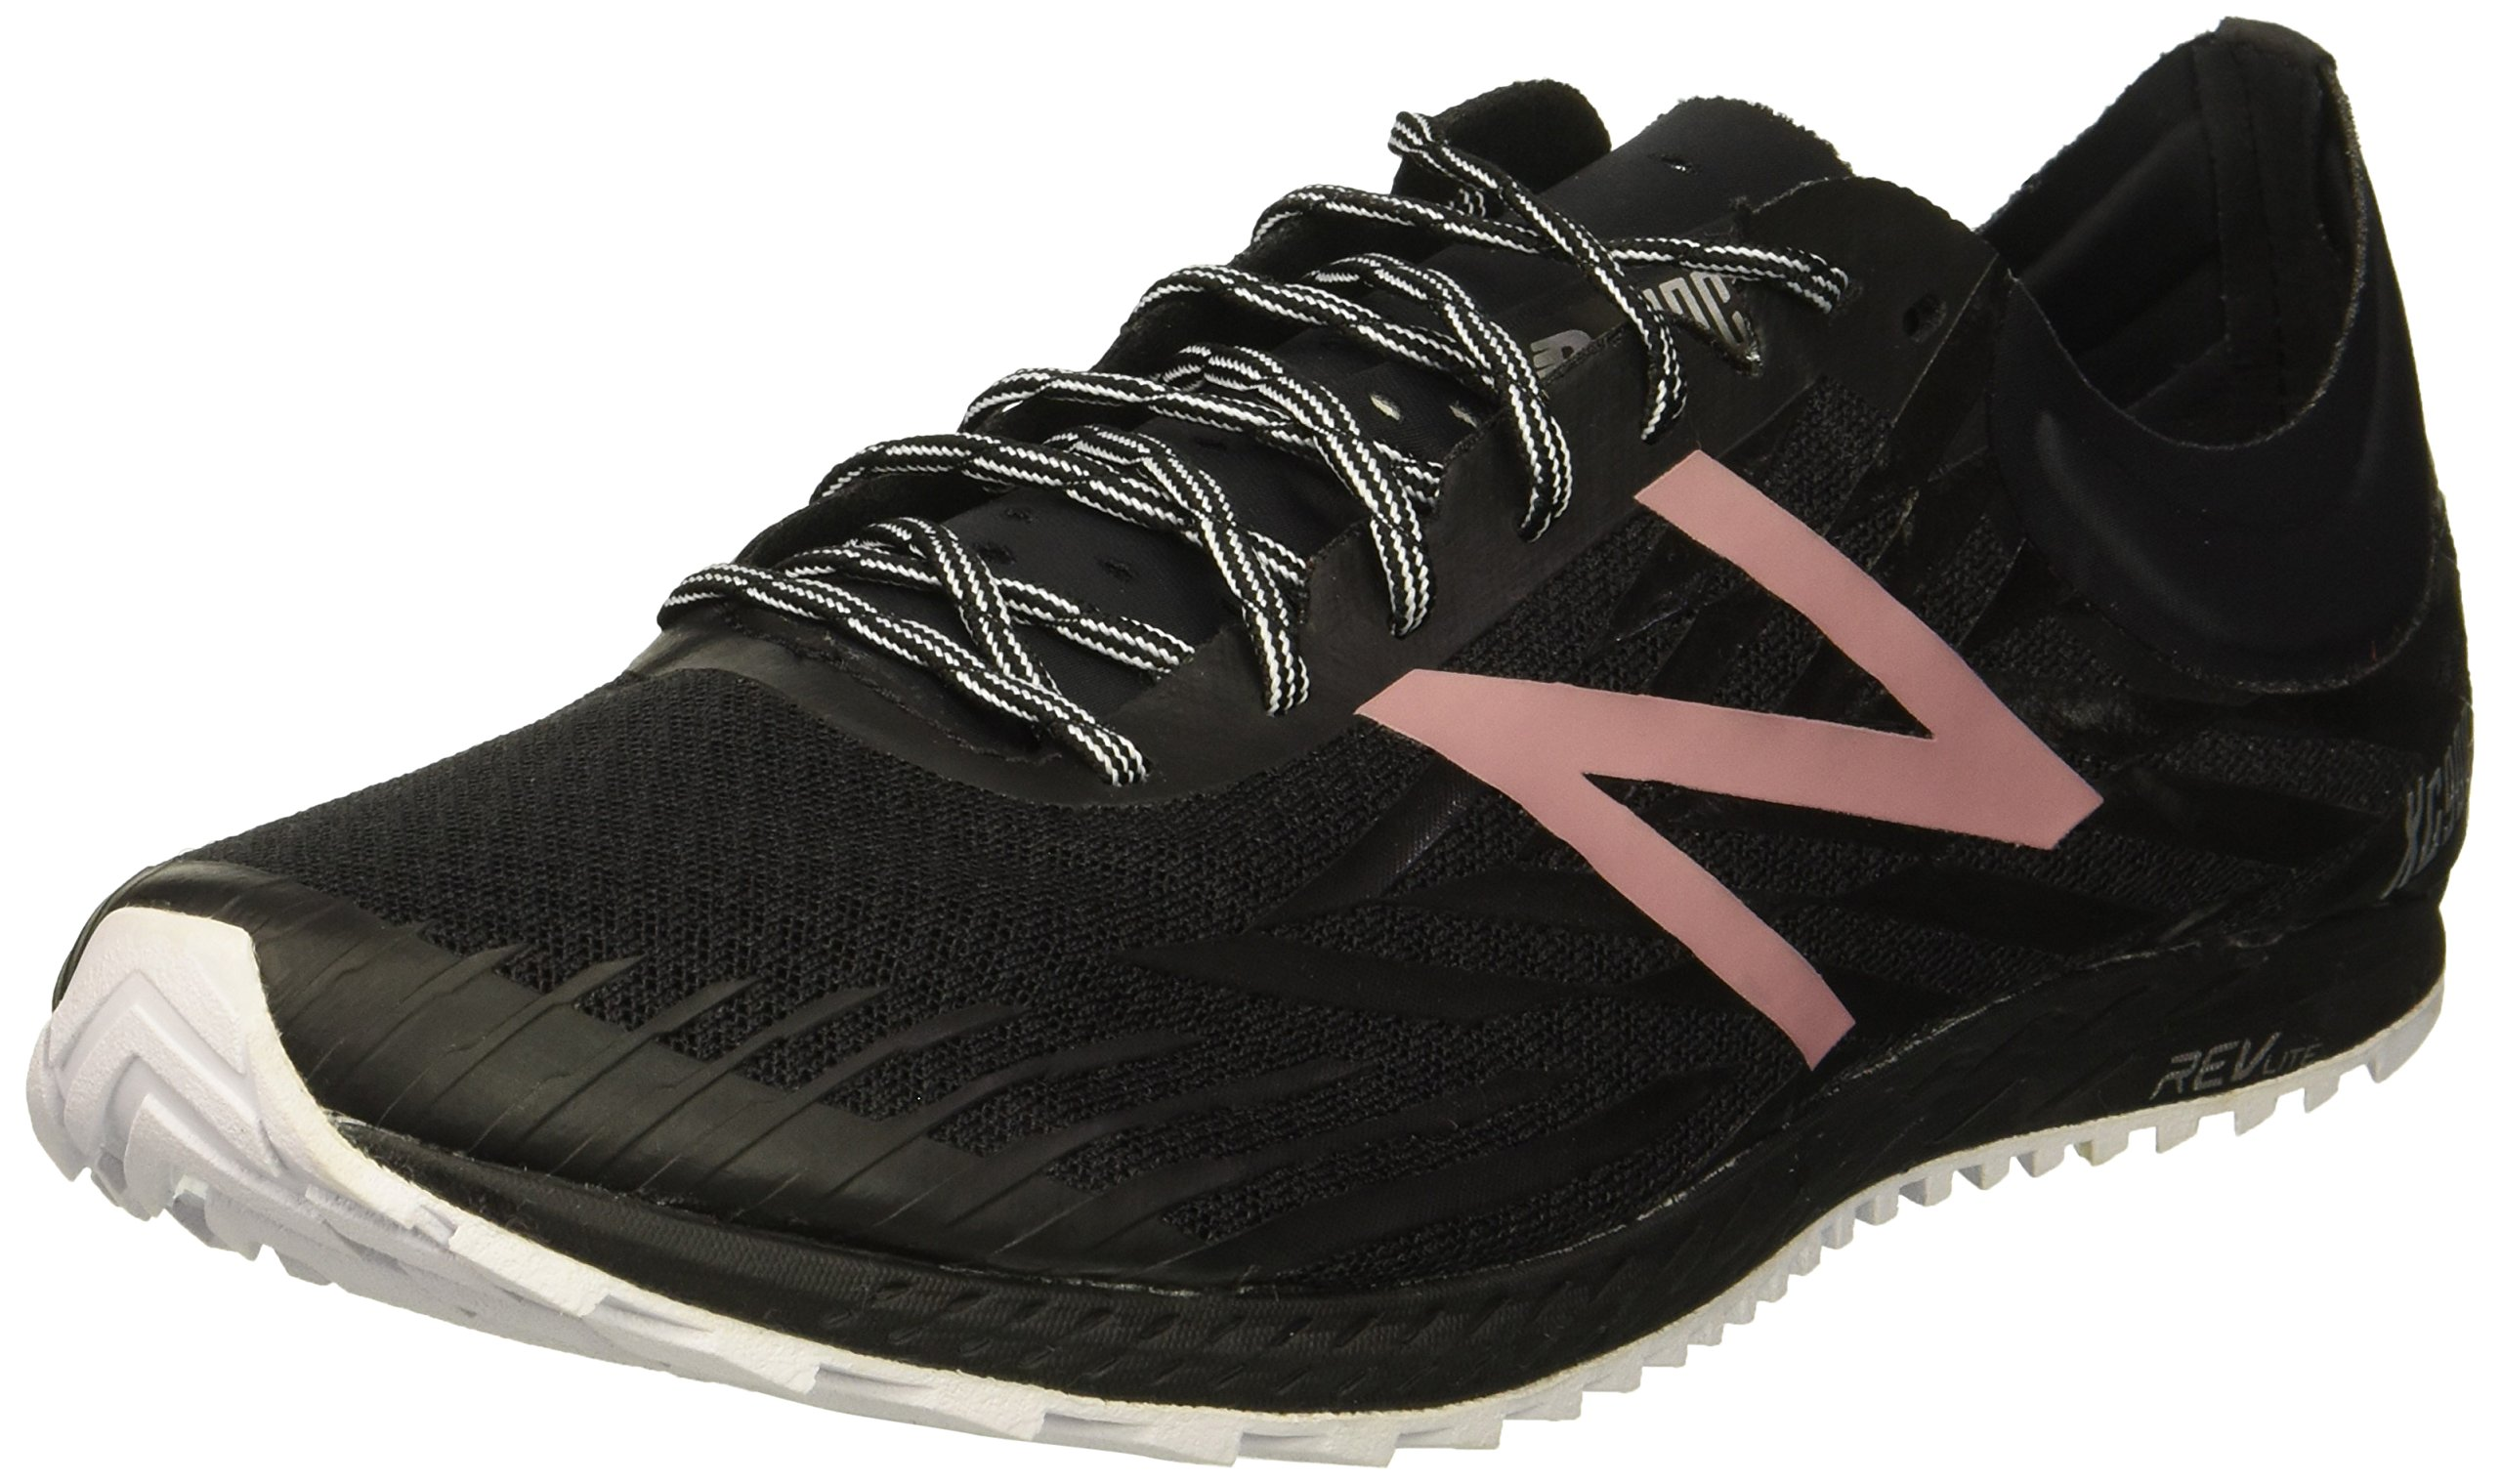 New Balance Women's 900v1 Cross Country Running Shoe, Black, 8 B US by New Balance